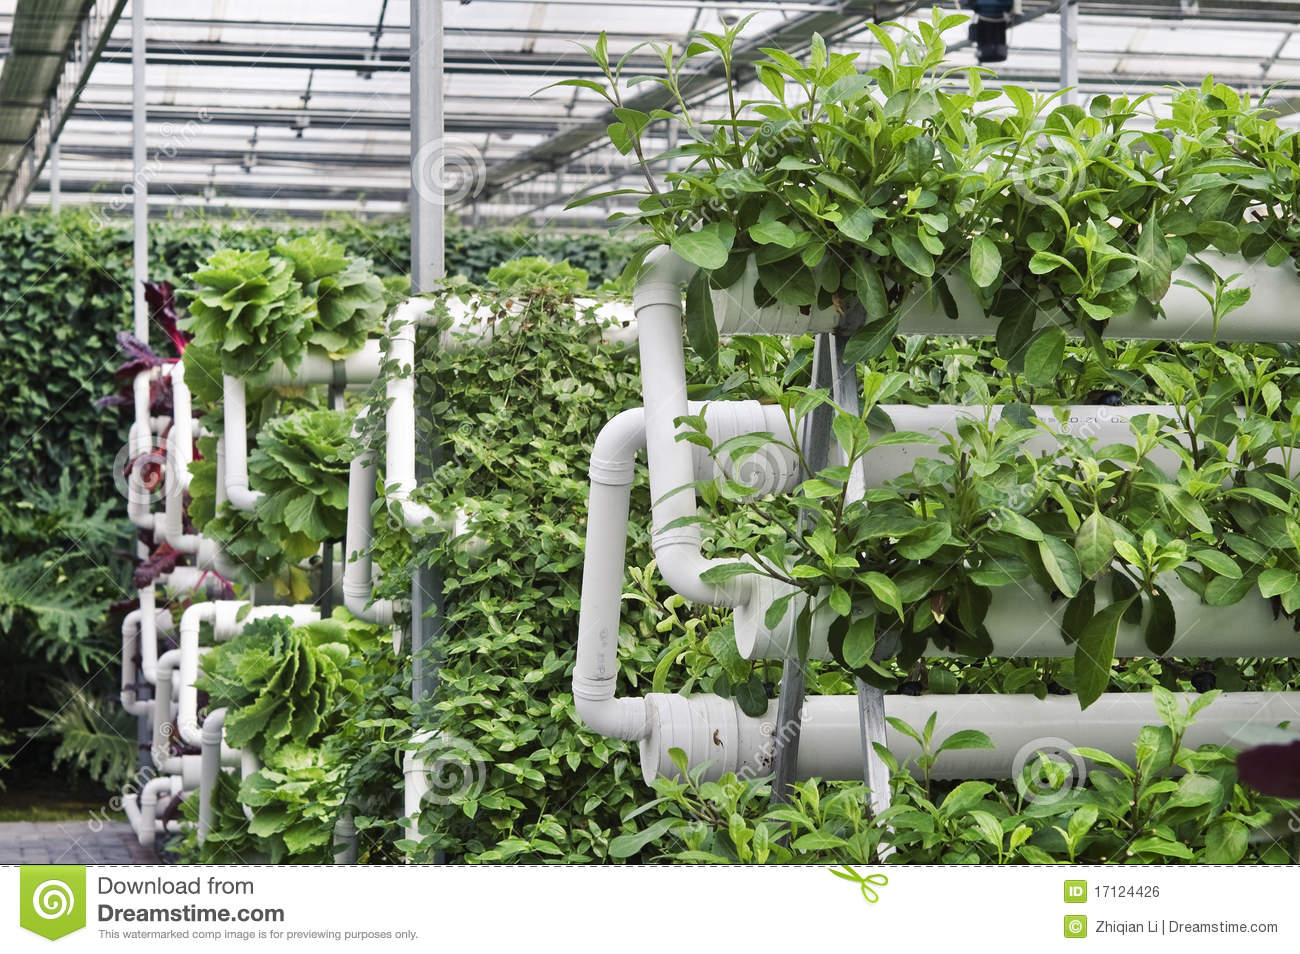 modern agriculture The answers to modern food production global problems hinge on the  widespread implementation of regenerative farming and decentralized.